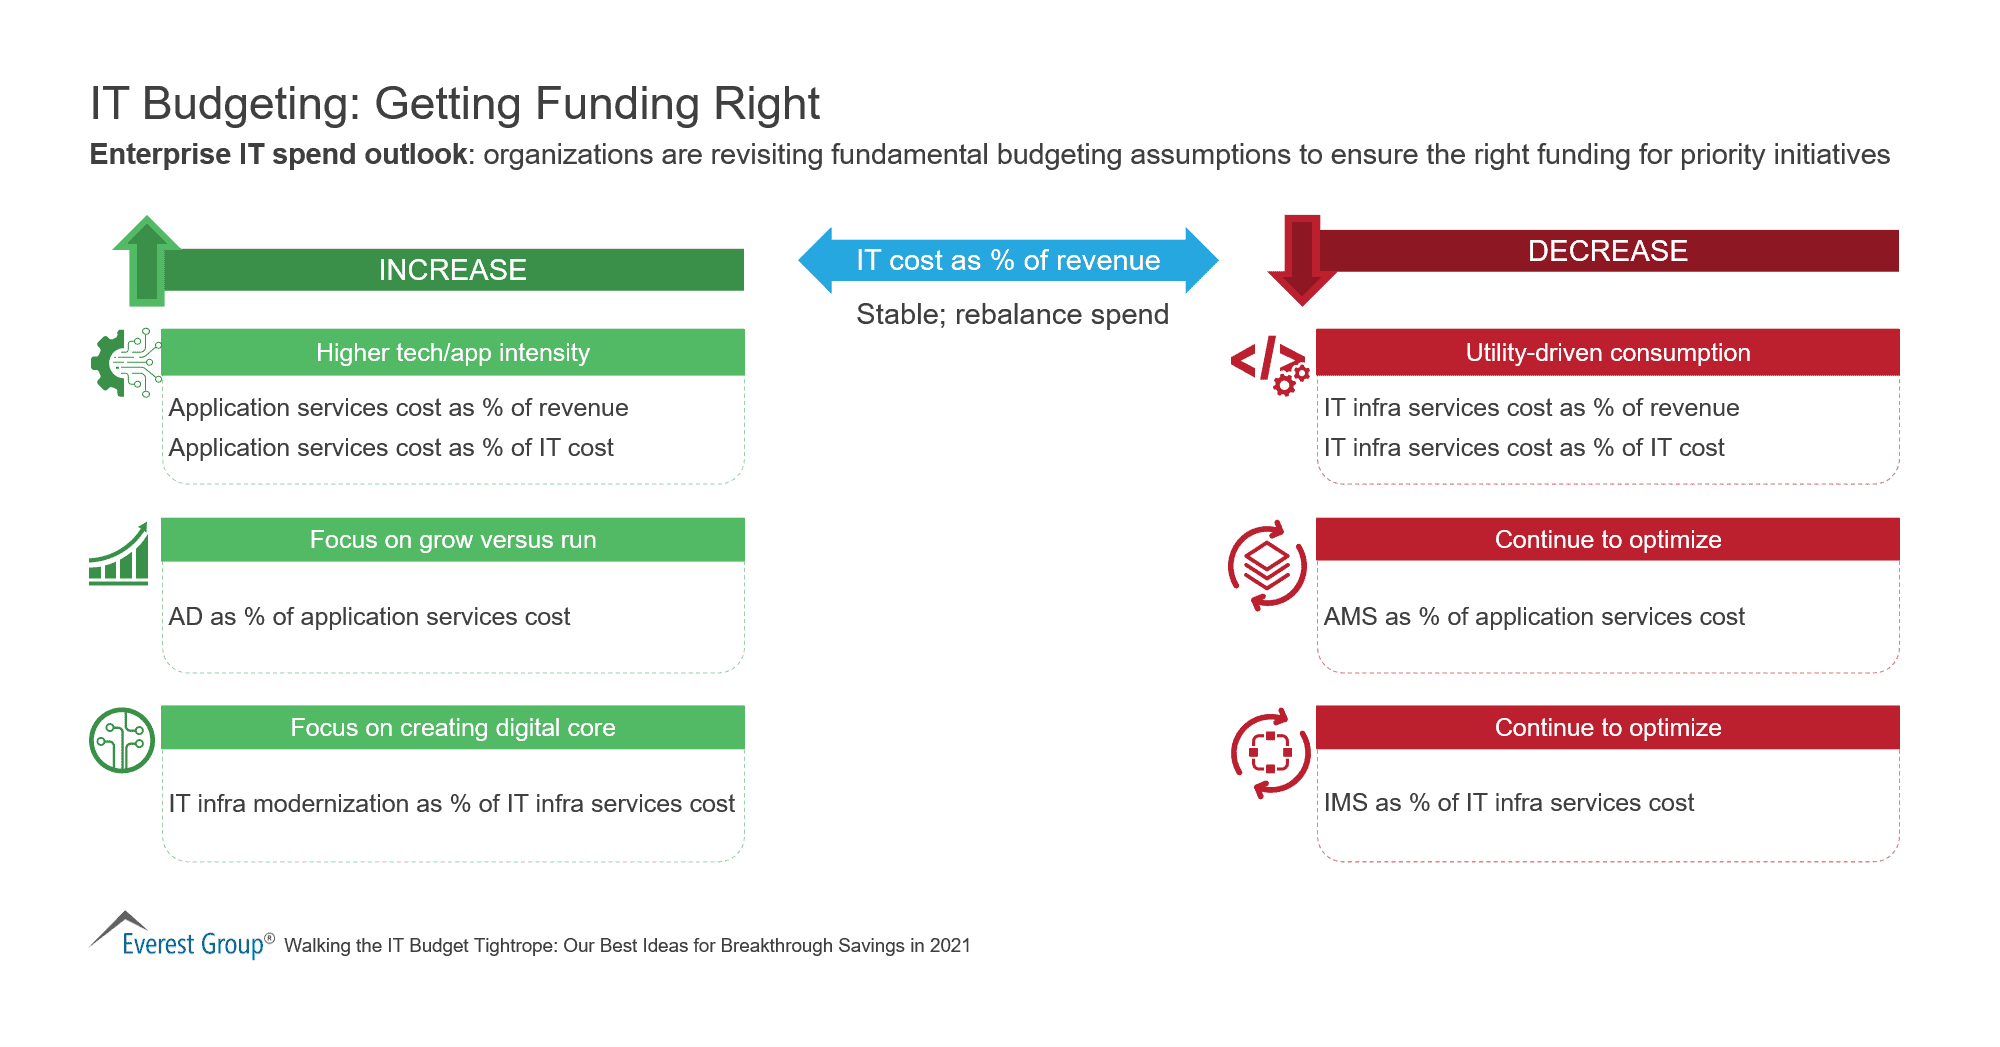 IT Budgeting-Getting Funding Right